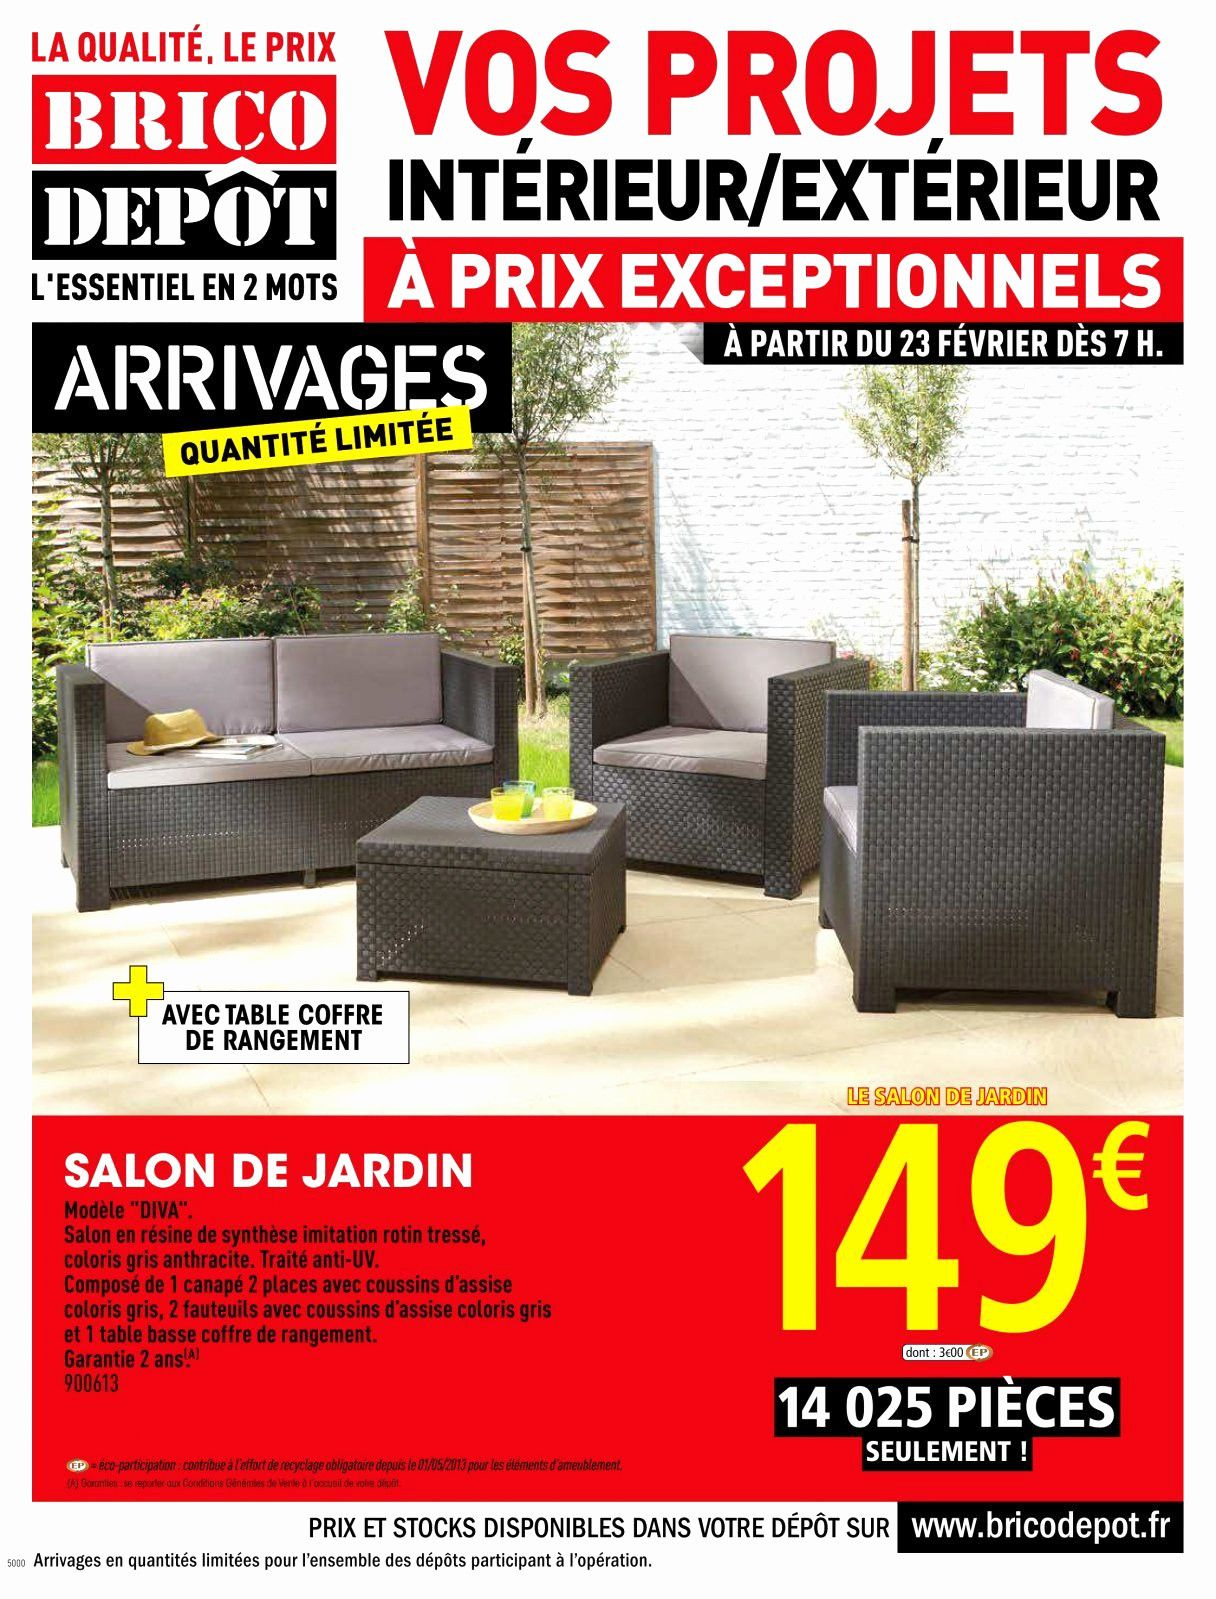 Unique Promo Salon De Jardin Brico Depot Outdoor Furnit Furniture Design Living Room Outdoor Furniture